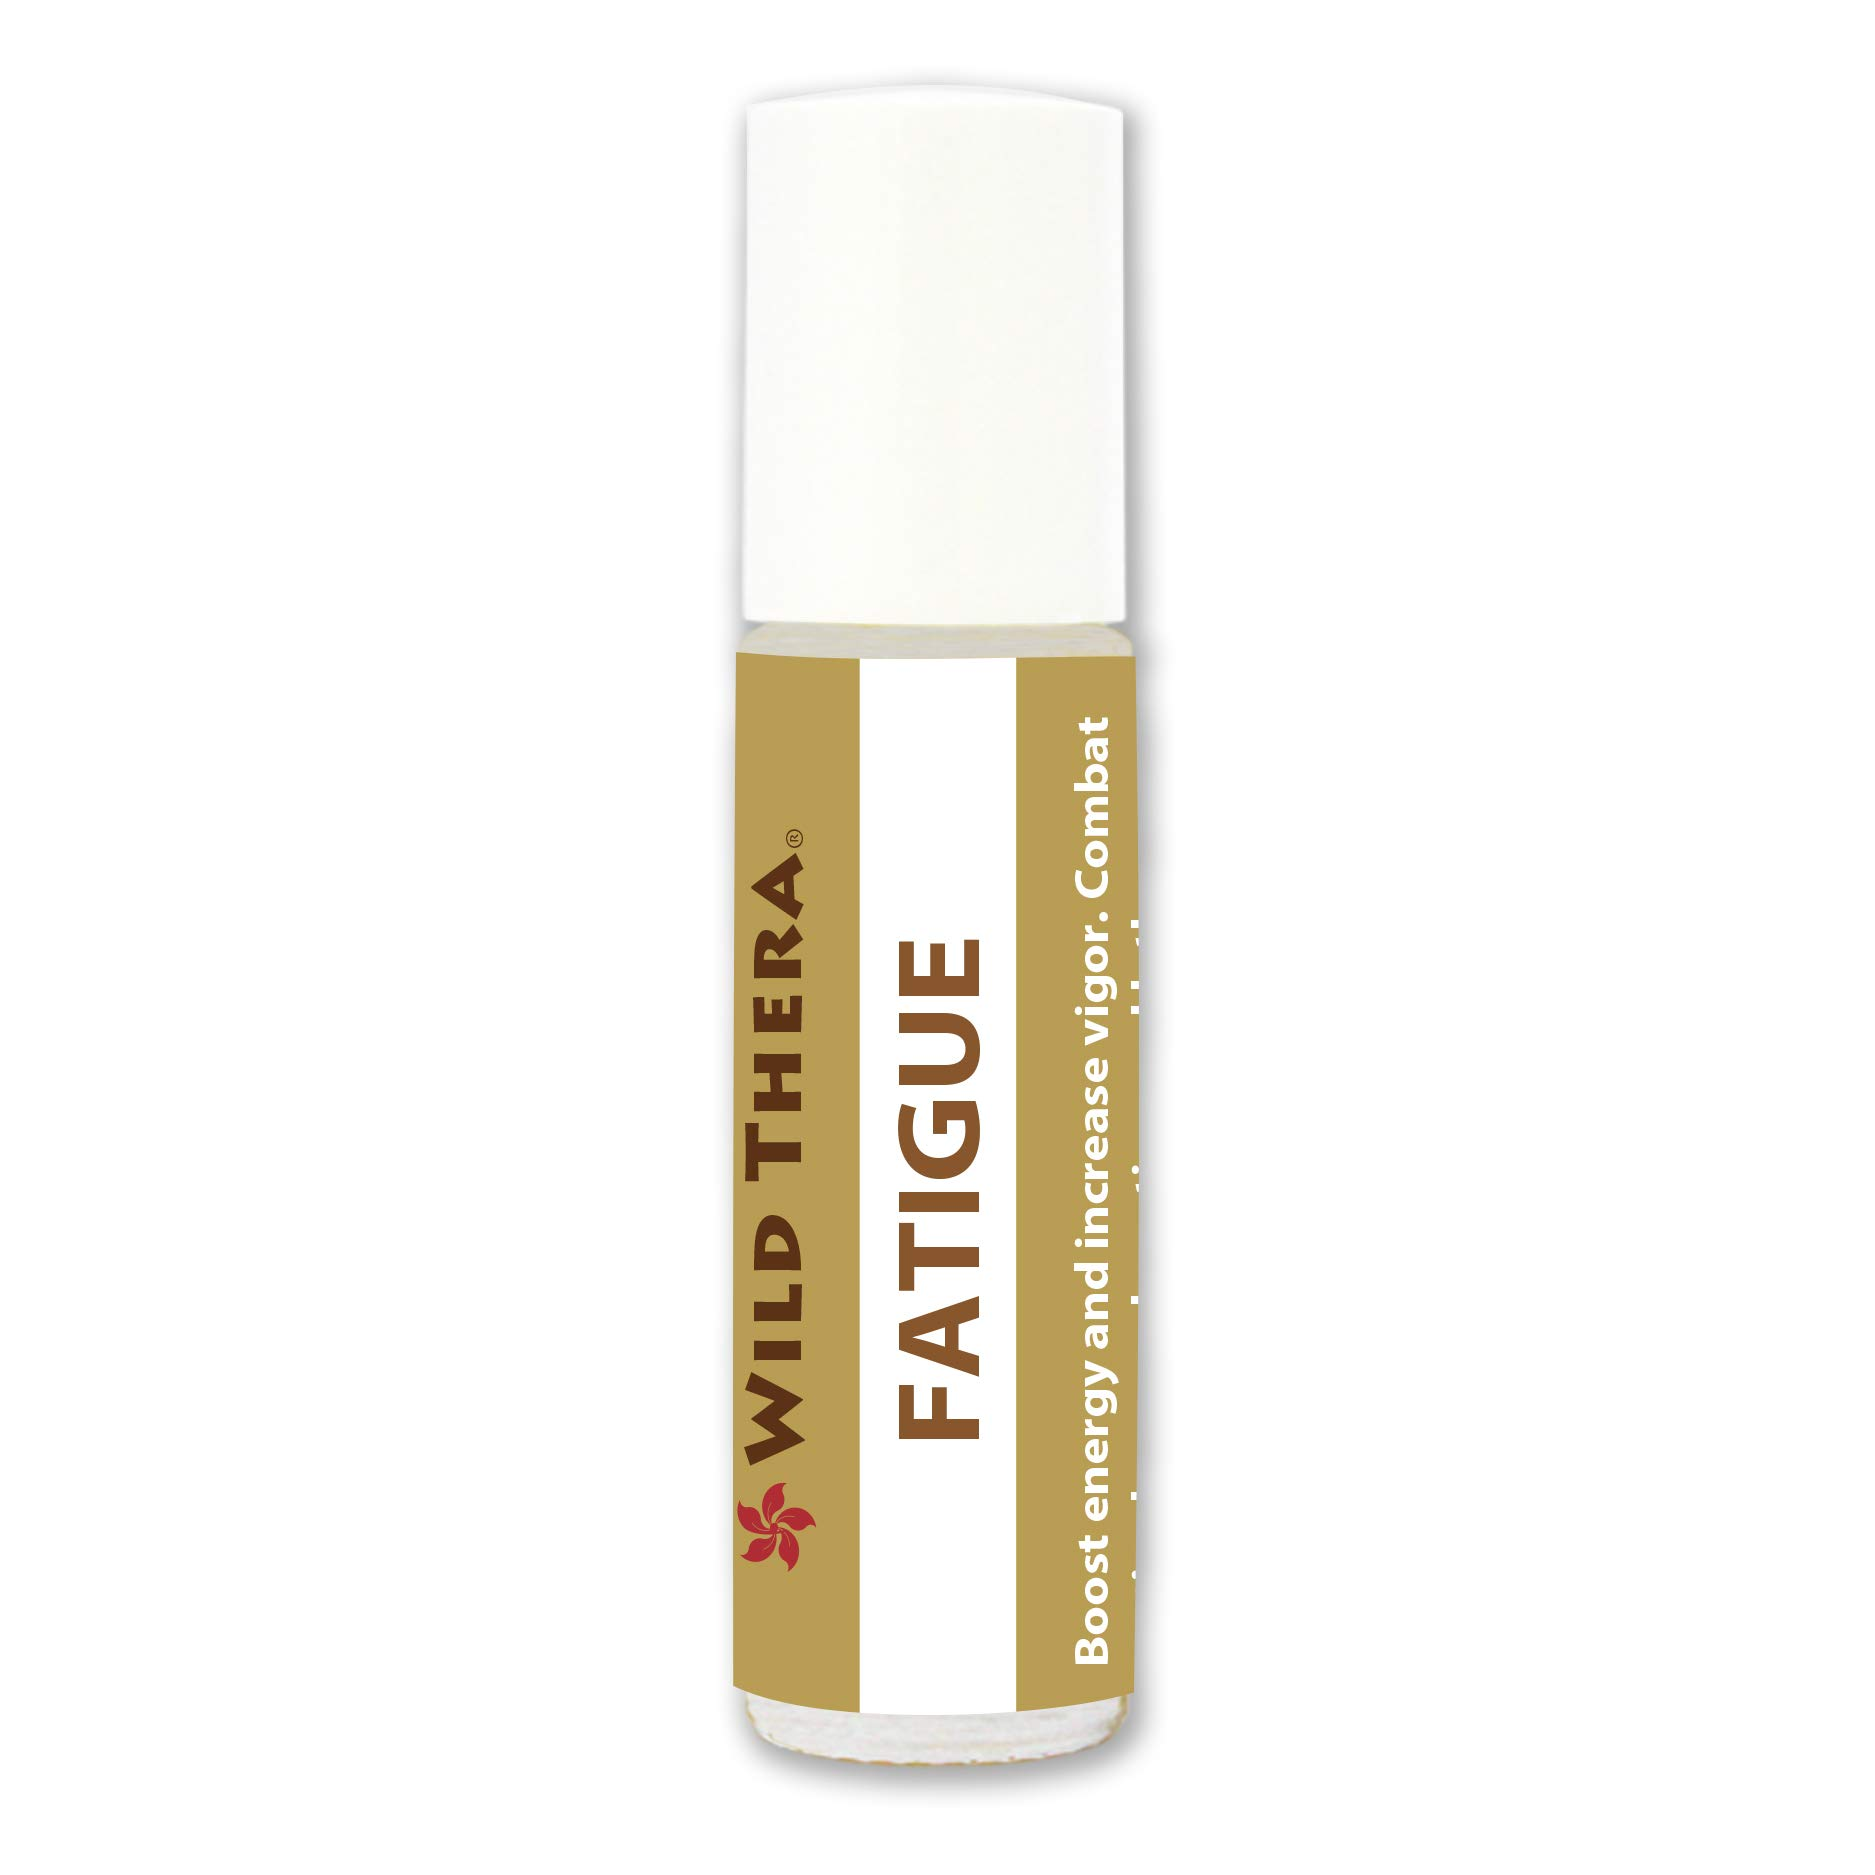 Wild Thera Fatigue Roll On Blend 10 ml. Aromatherapy for Chronic Tiredness, Dizziness, headaches, aching muscles, moodiness and irritability. Natural & Organic Ingredients. Portable & lightweight.